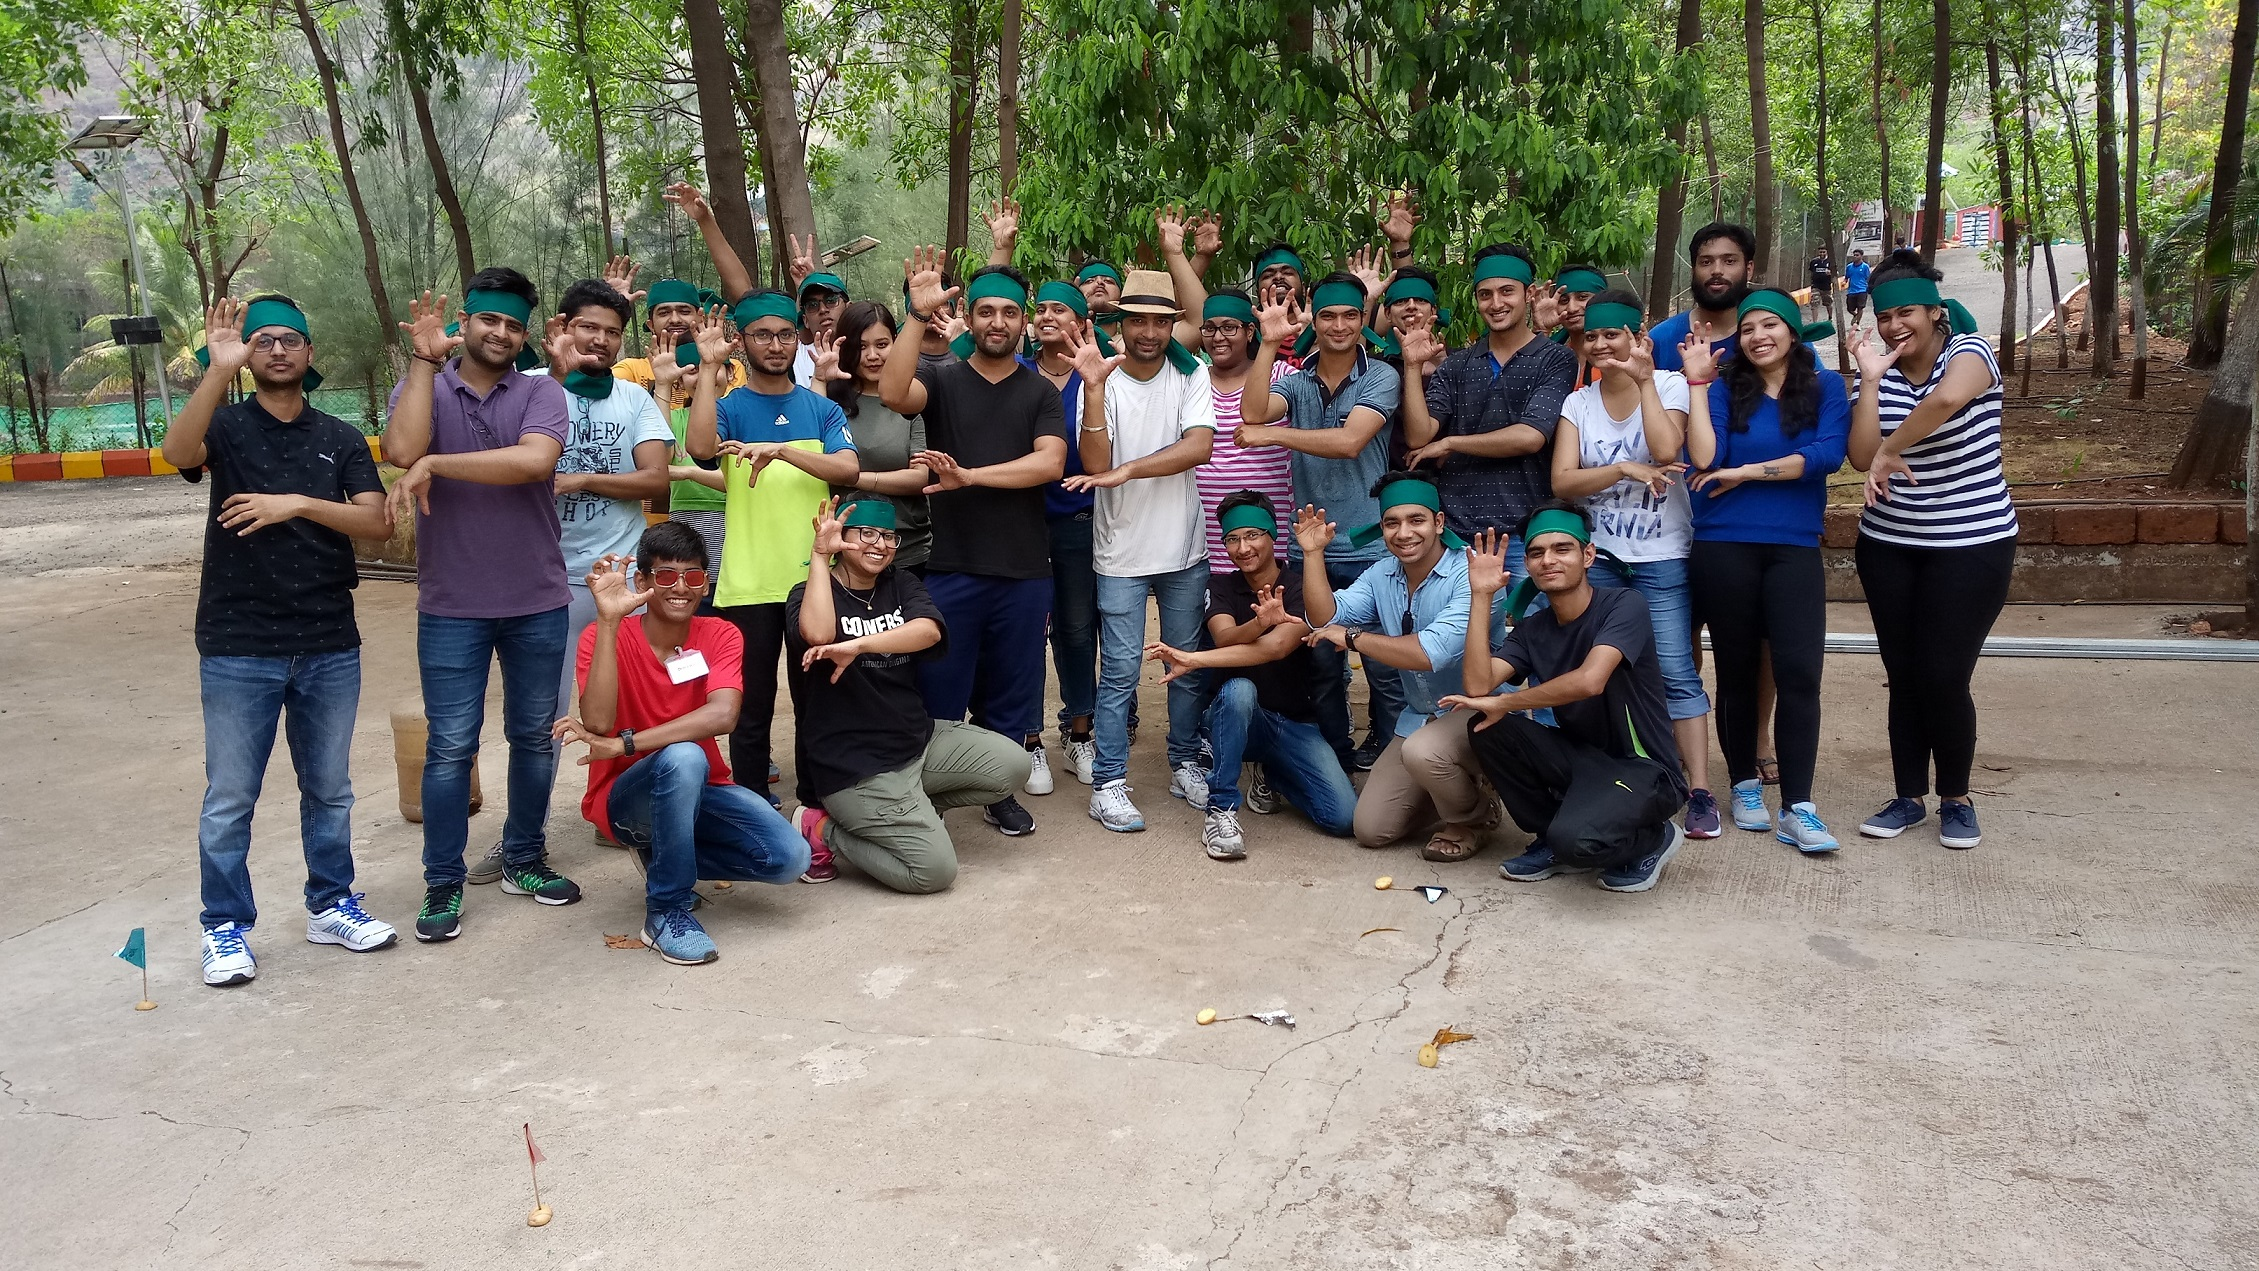 Outbound Program: Merry making in Mohili Meadows!